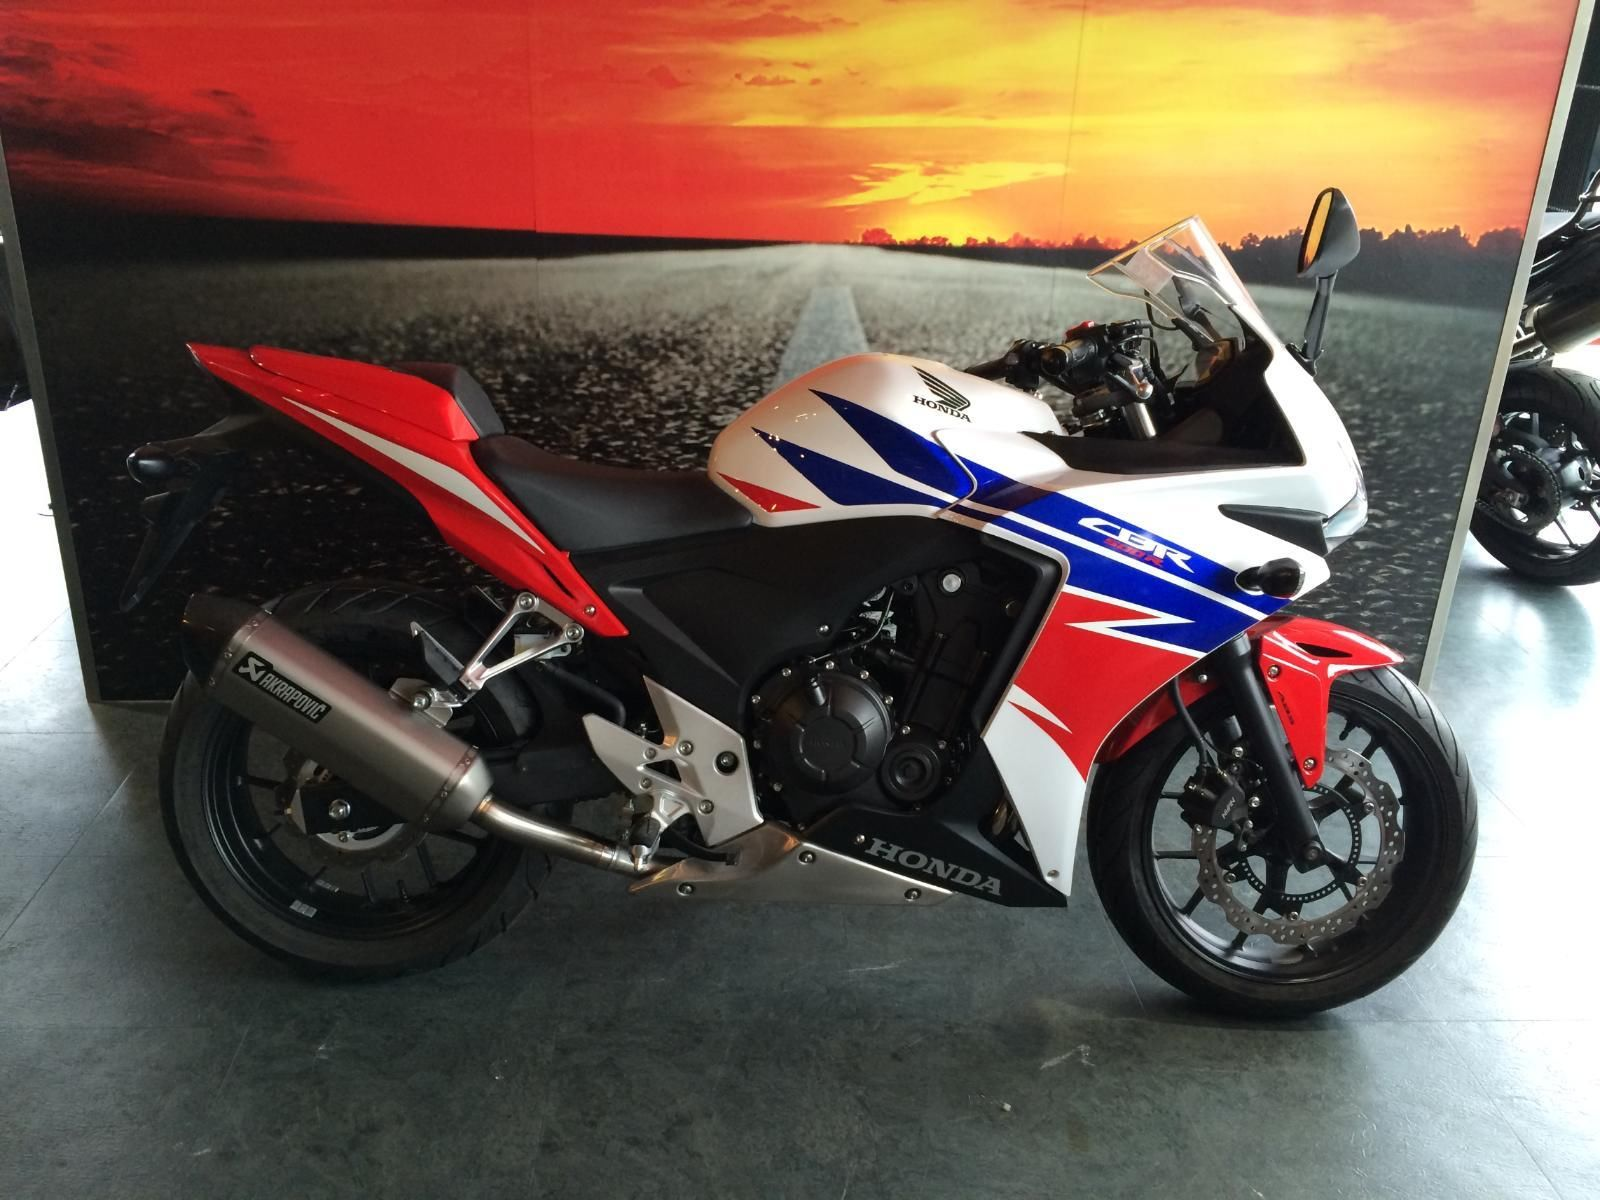 honda cbr 500 r 2014 massive savings one only at this. Black Bedroom Furniture Sets. Home Design Ideas